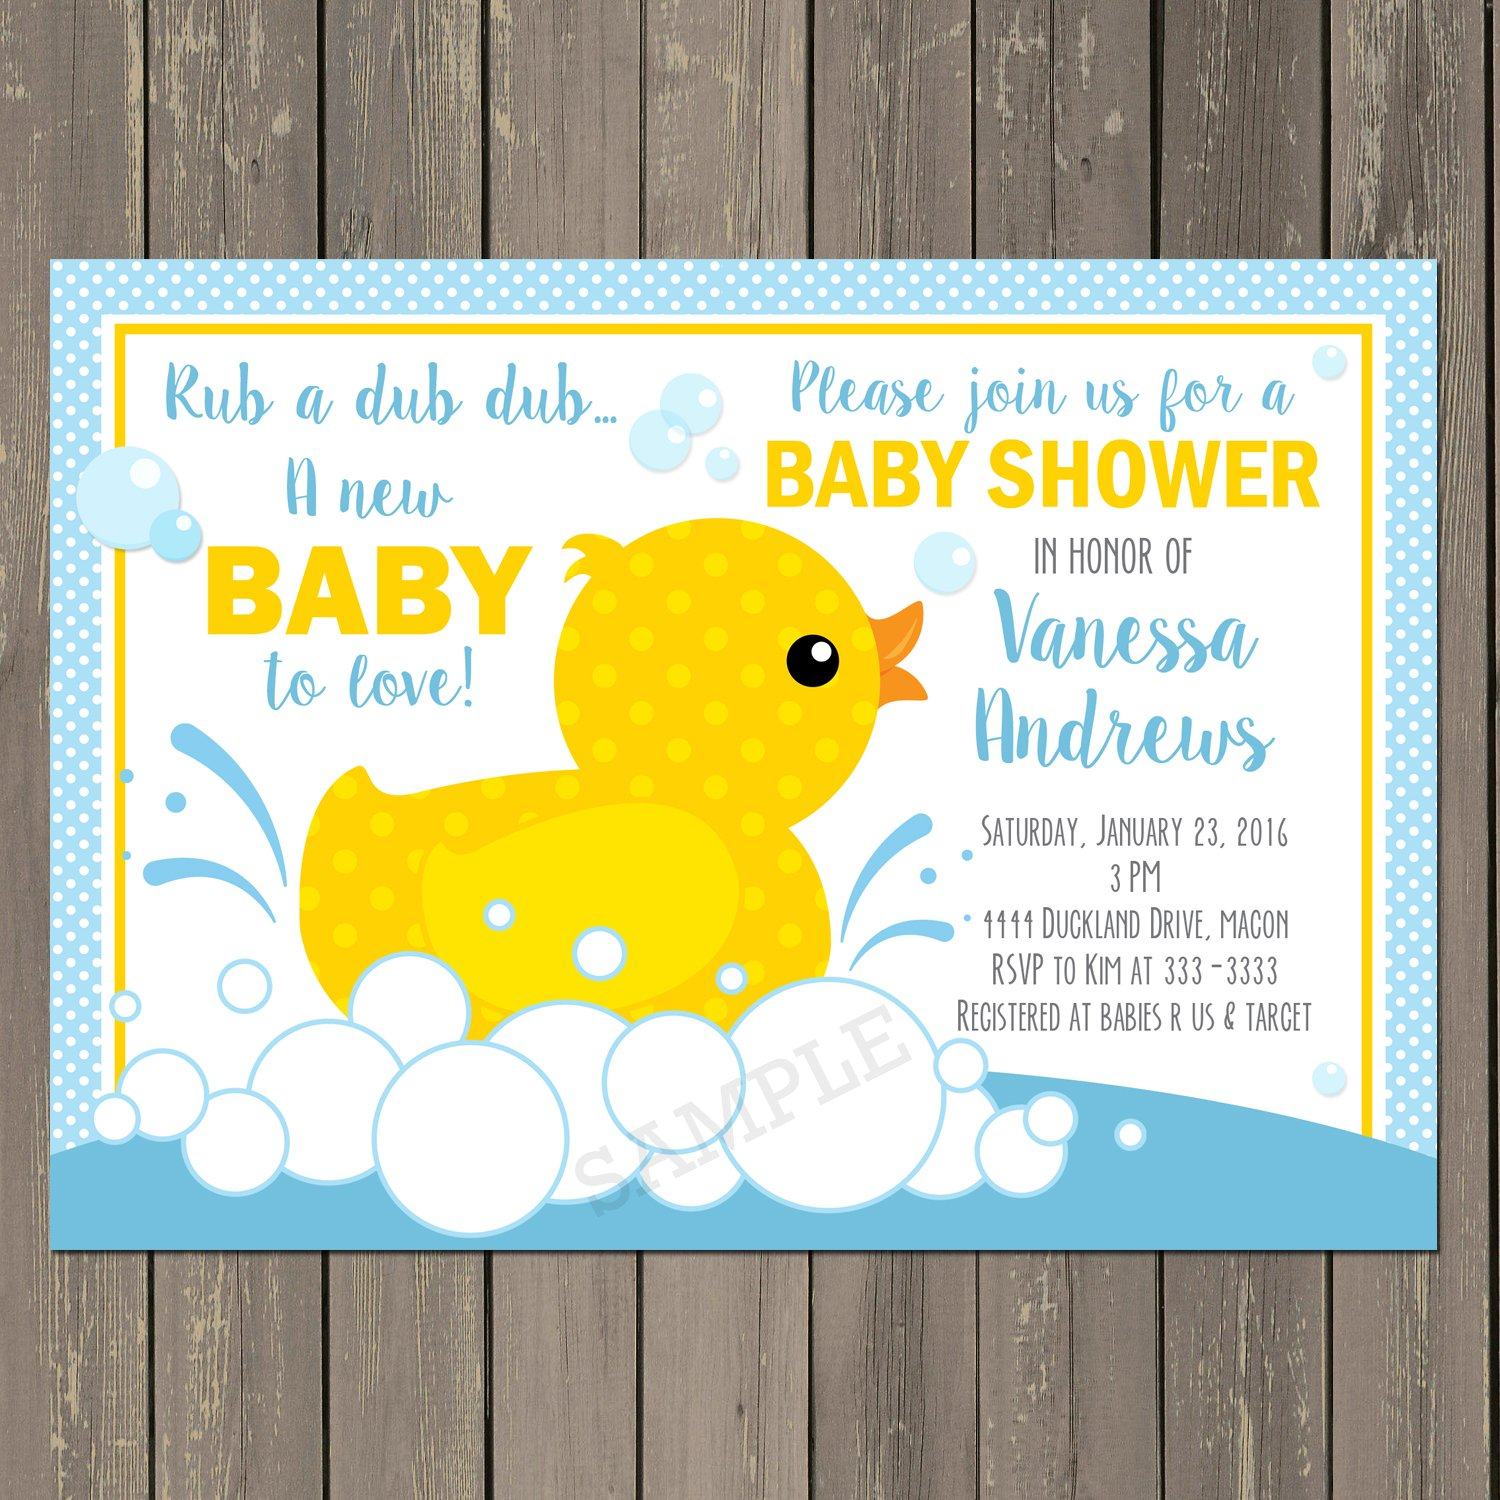 Amazoncom Rubber Duck Baby Shower Invitation Rubber Ducky Baby